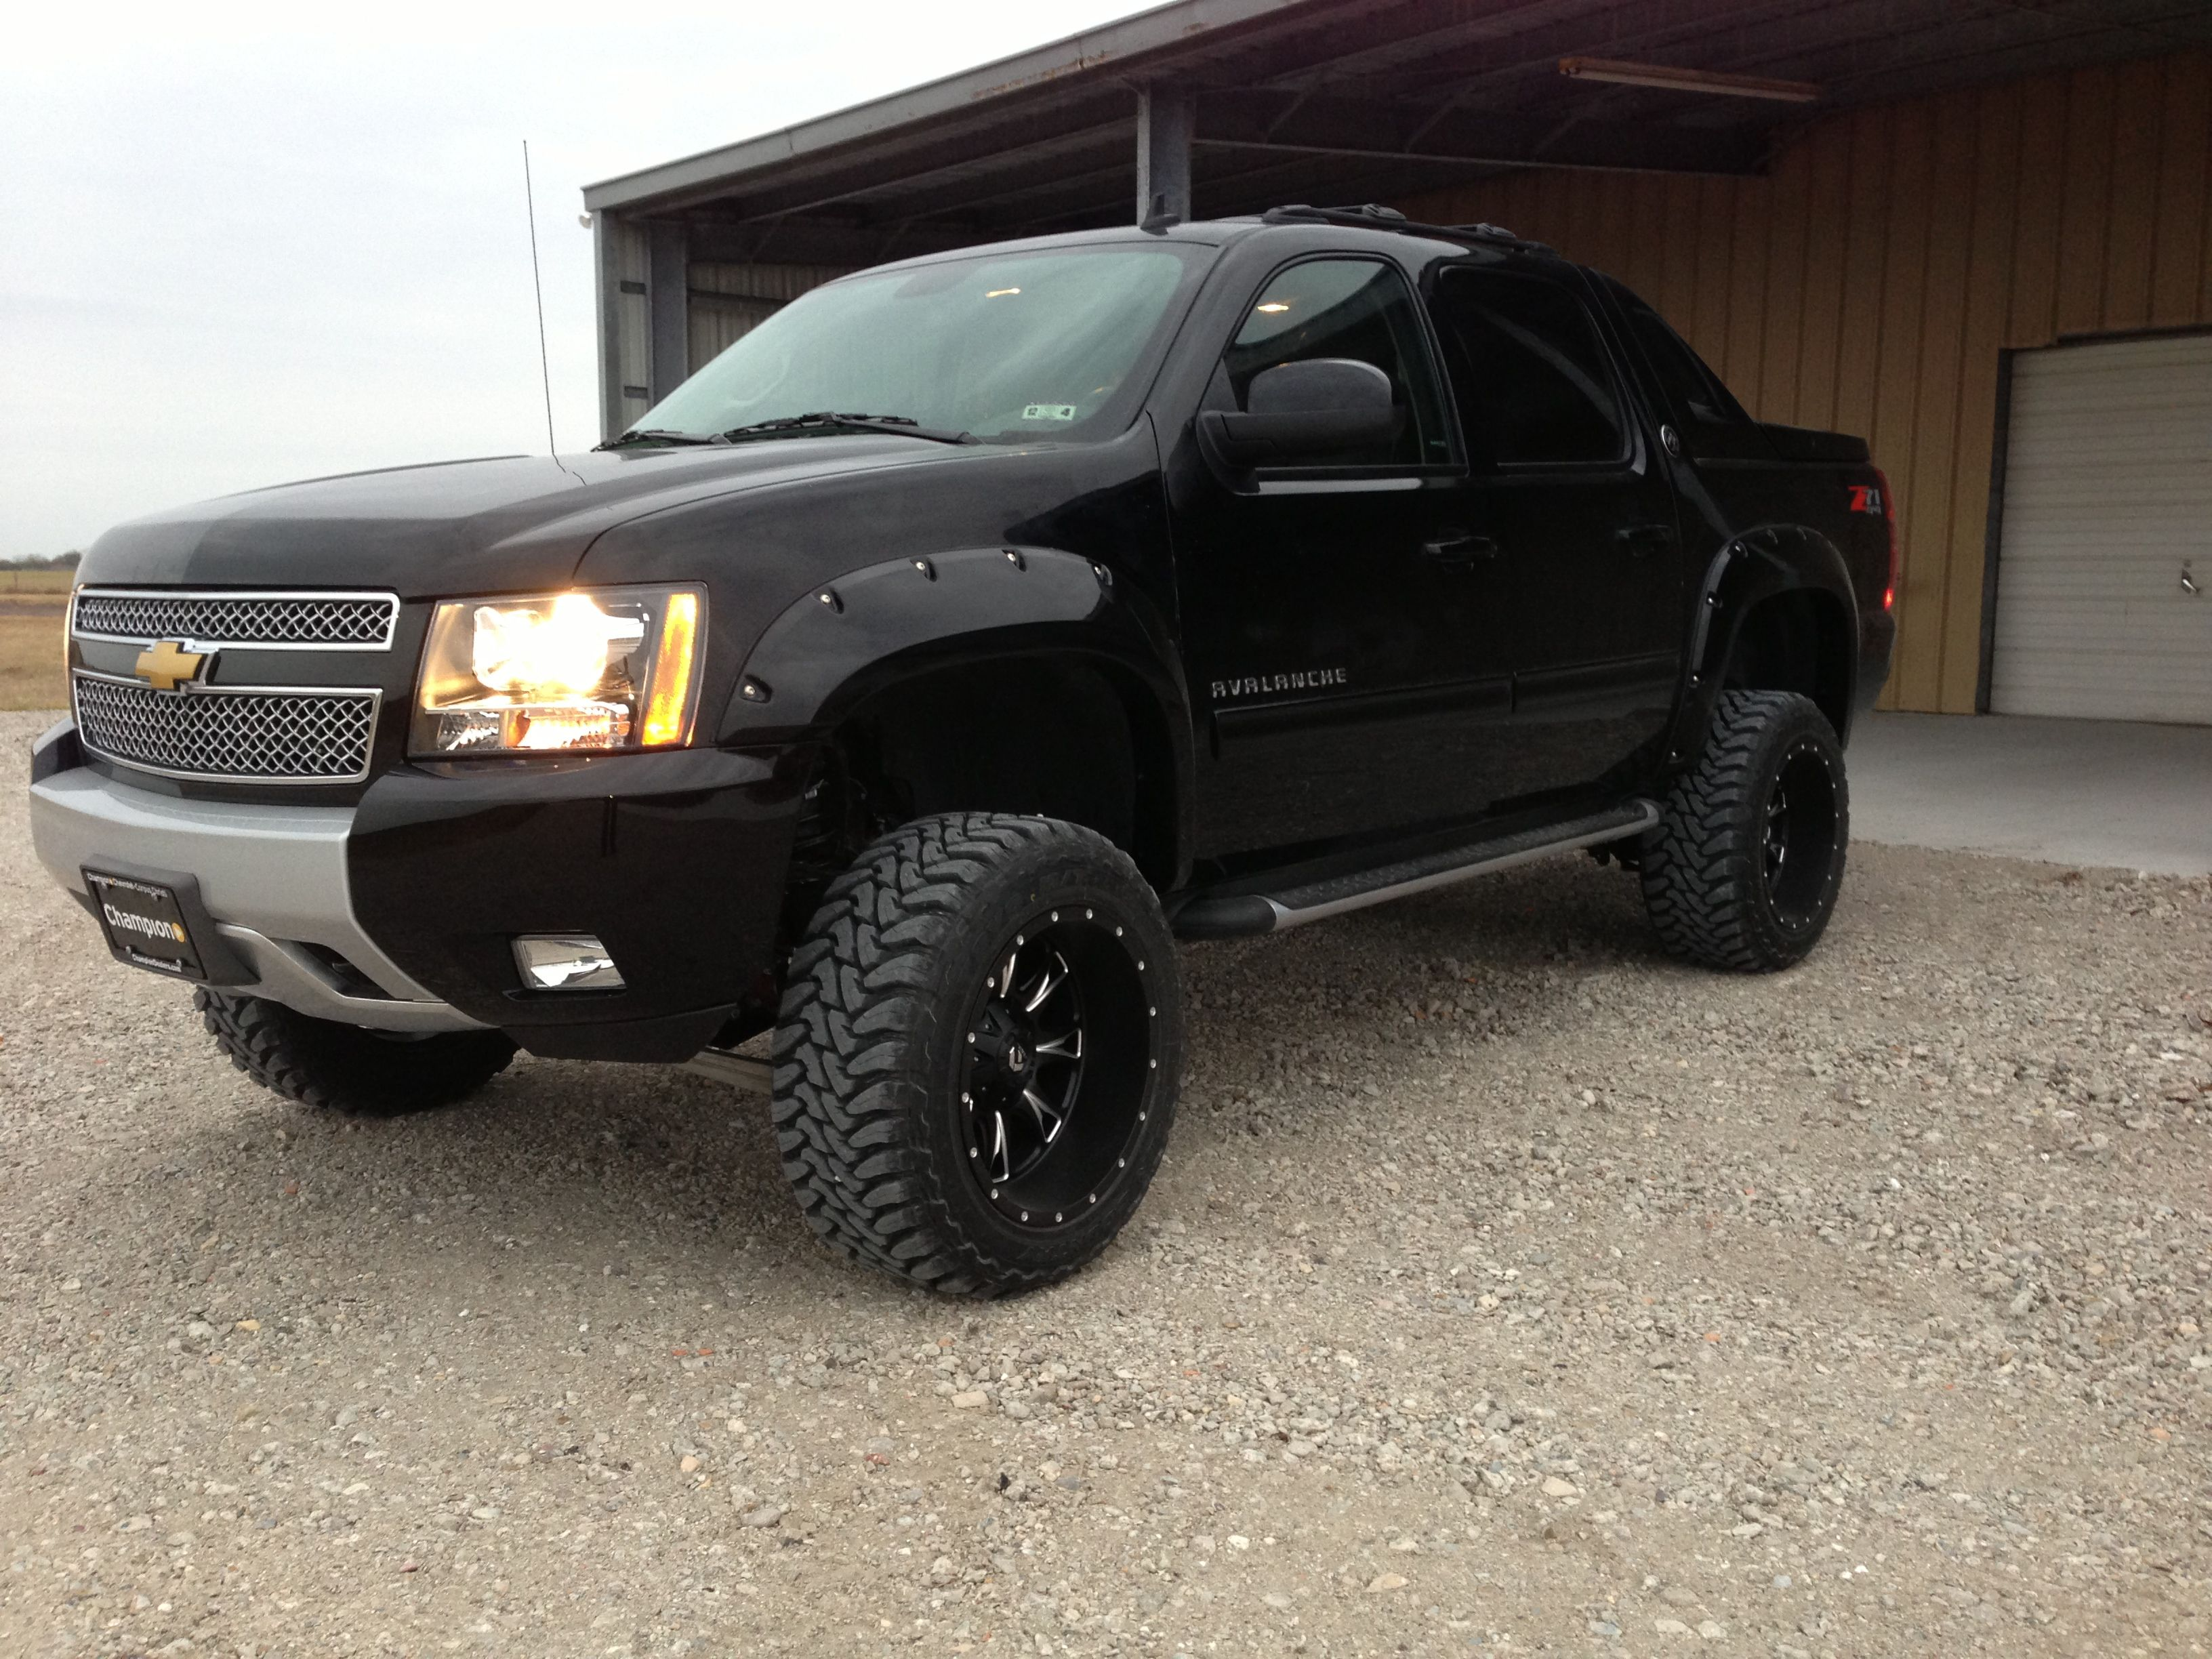 small resolution of my 2013 avalanche with 6 bds suspension lift 33x12 5x20 toyo open country tires fuel throttle deep dish rims and matching black fender flares